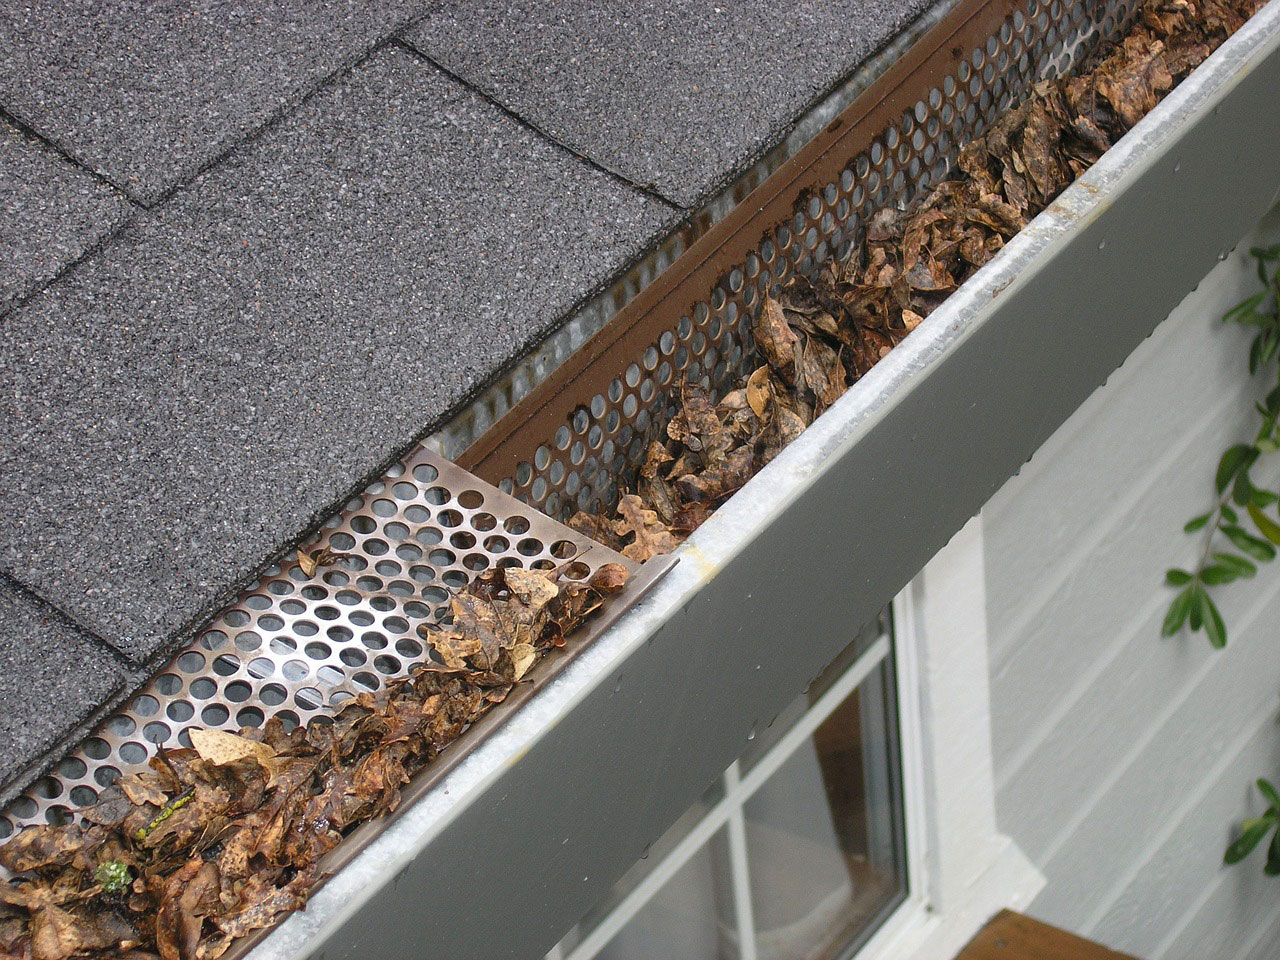 clogged gutters common roof problem